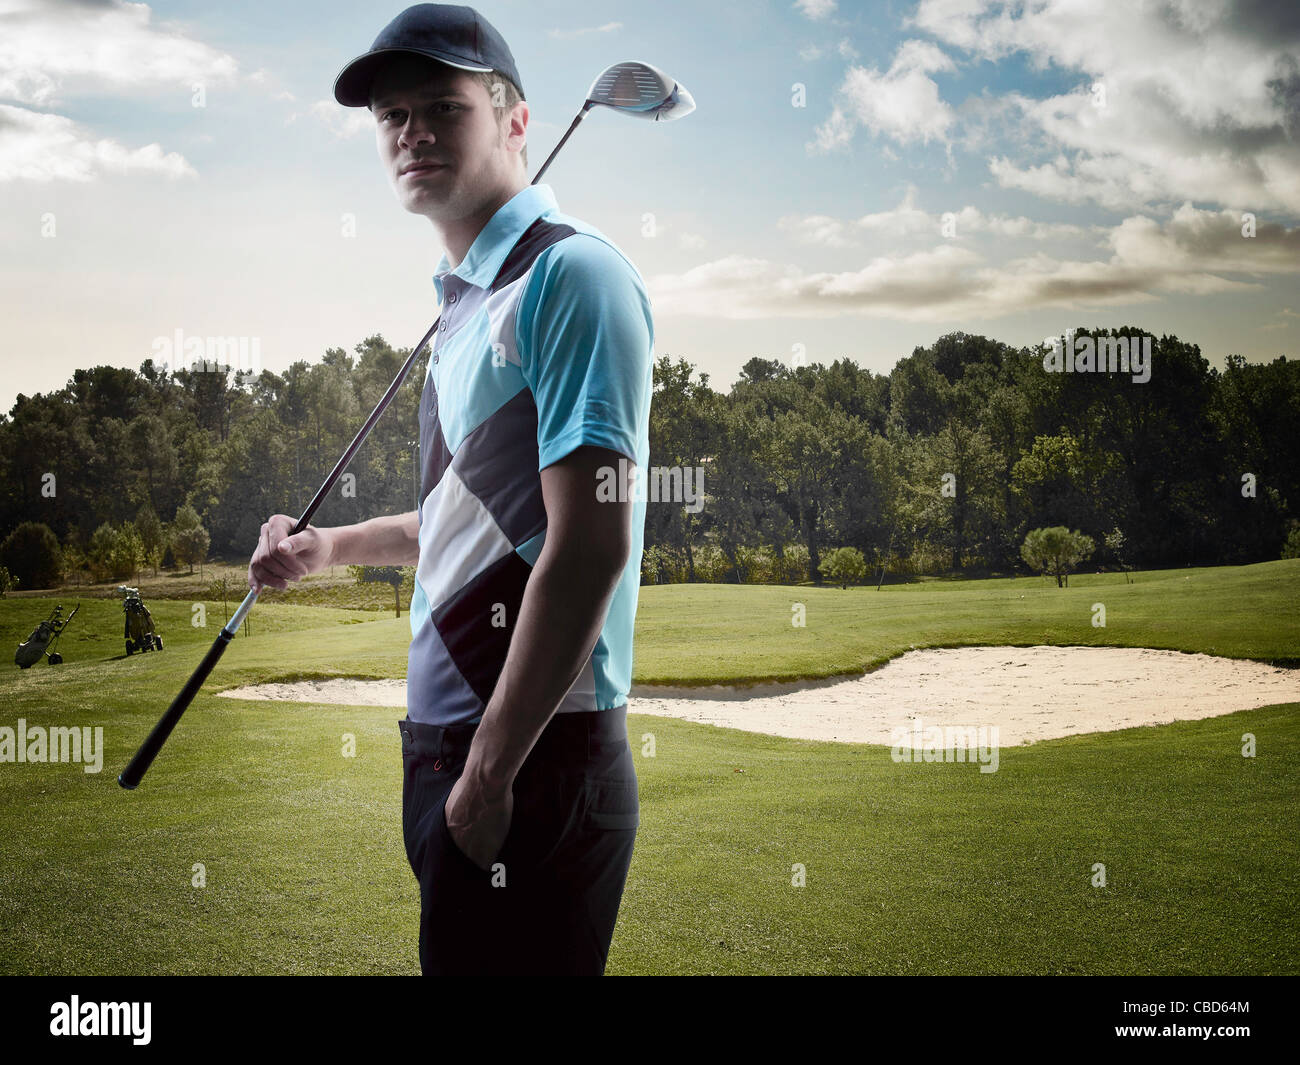 Man carrying golf club on course - Stock Image